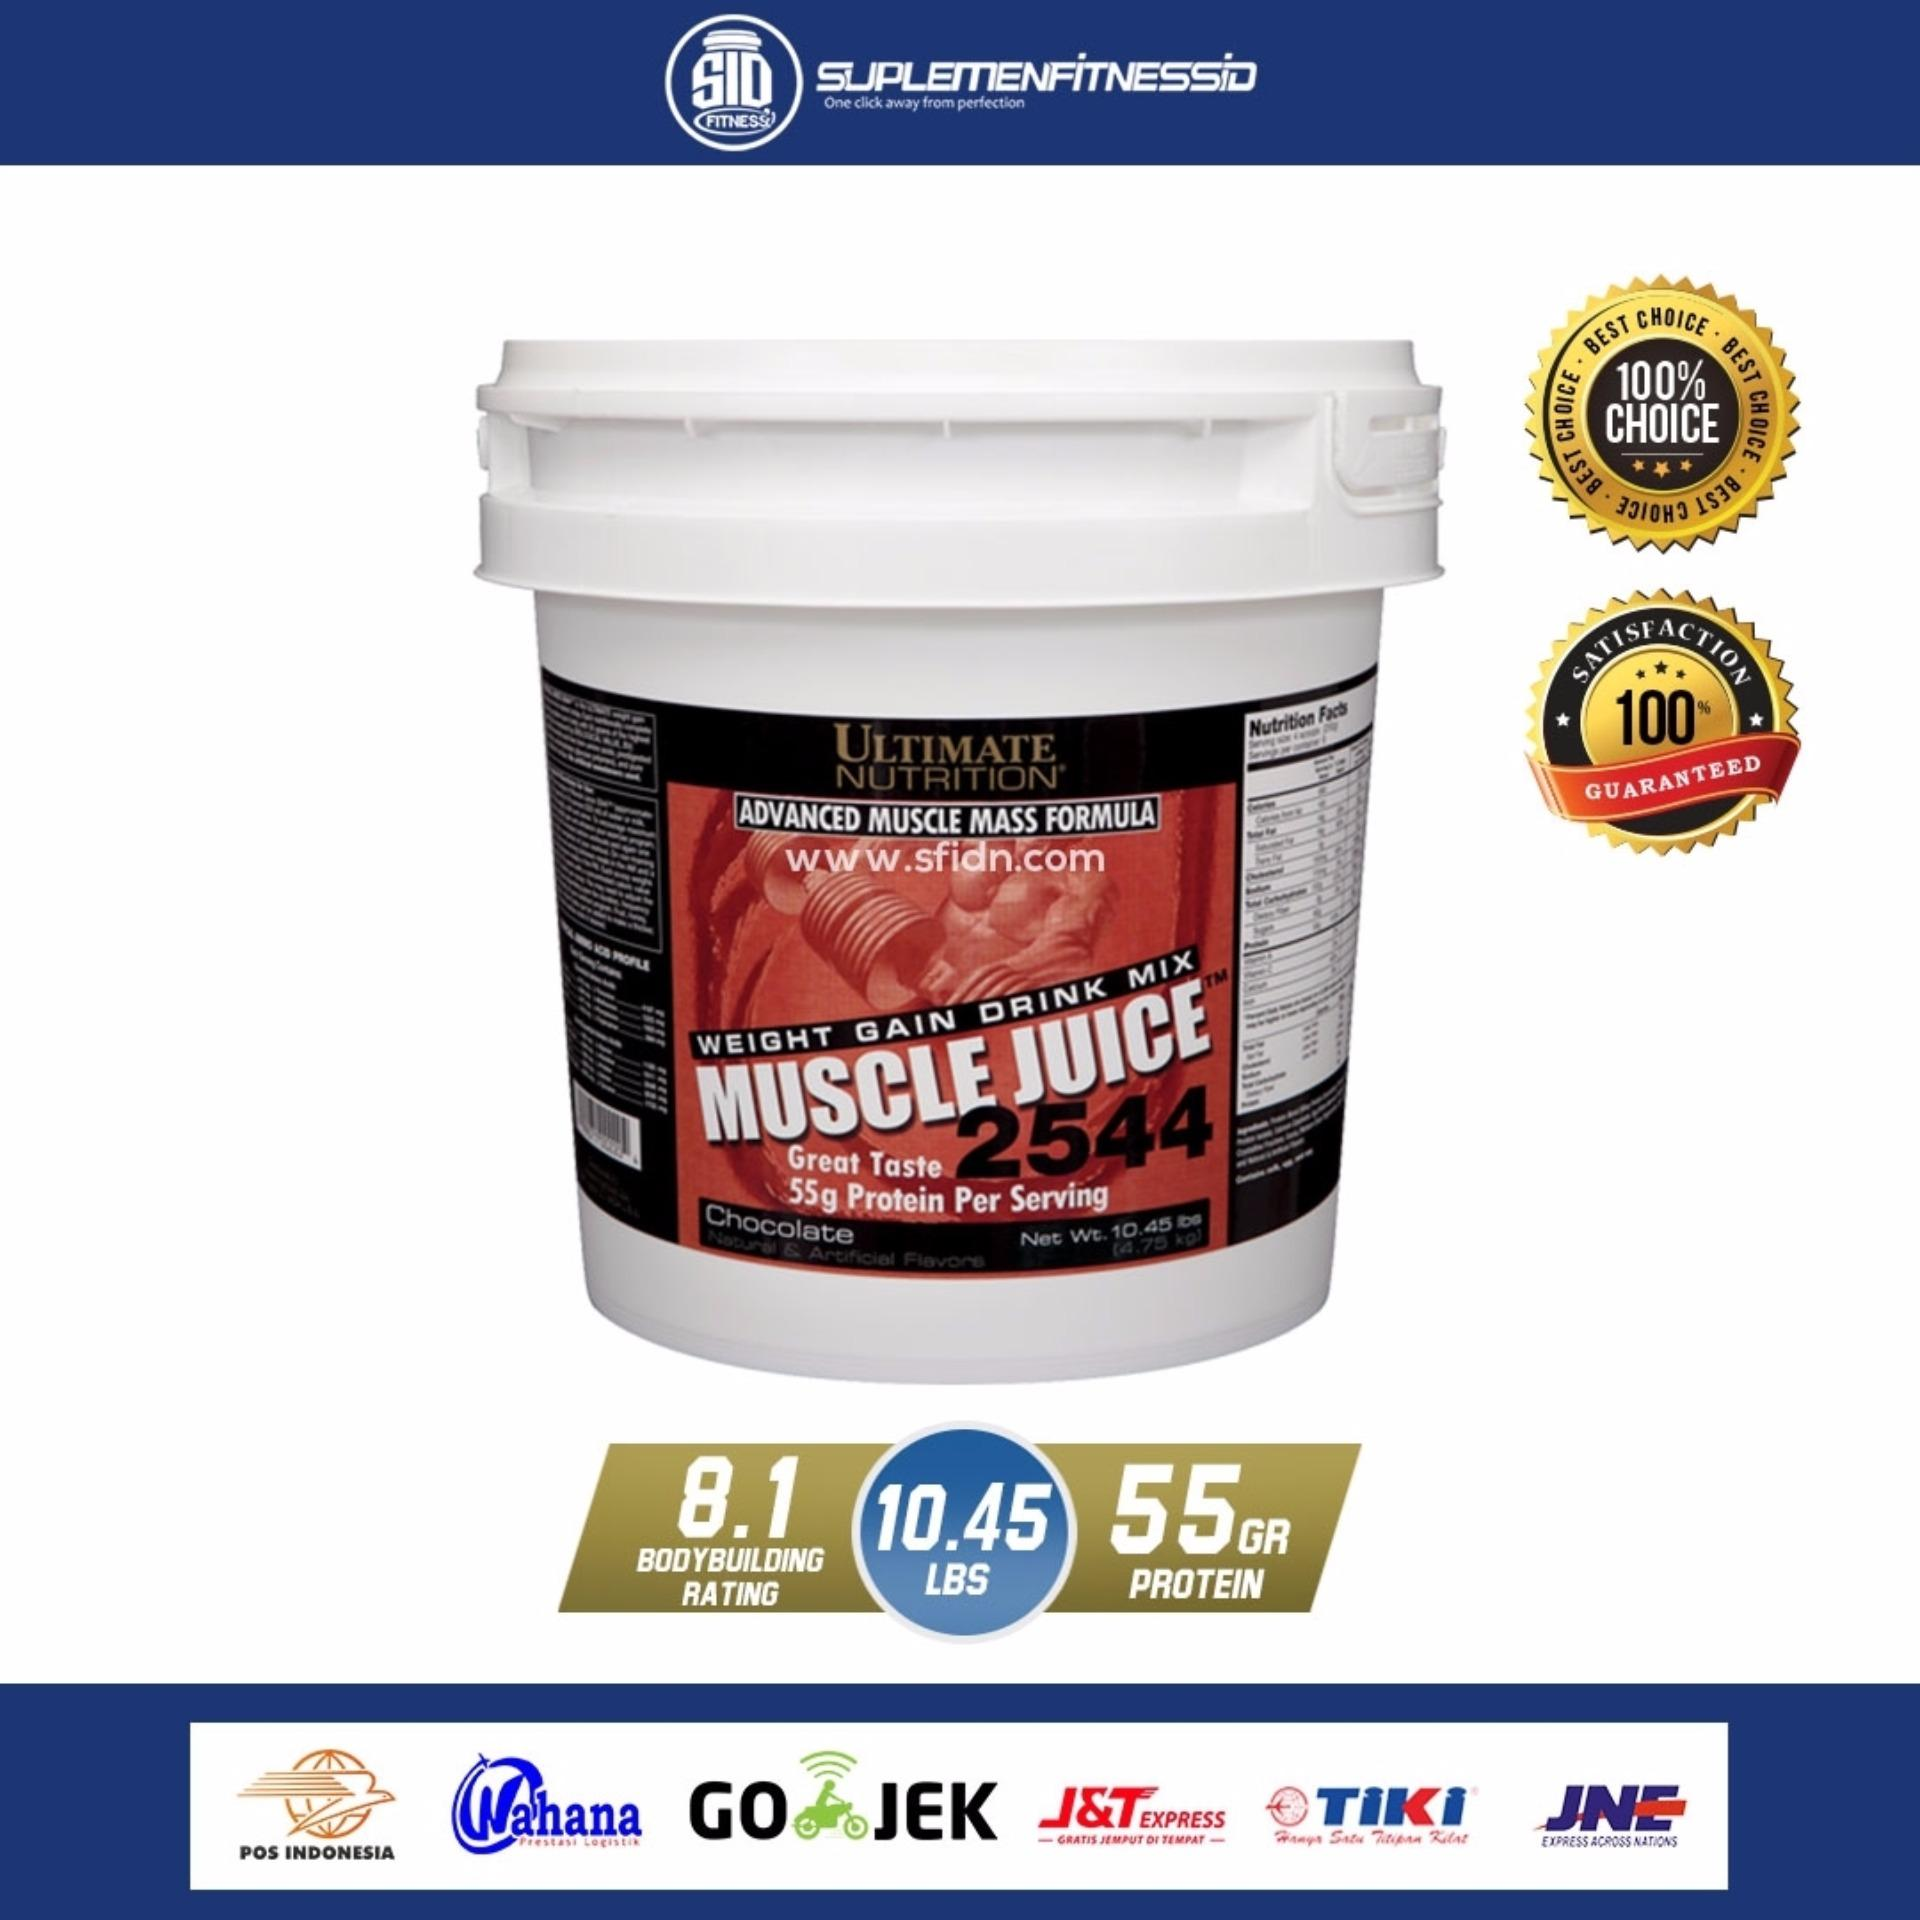 Spesifikasi Ultimate Nutrition Muscle Juice 4 75 Kg Rasa Chocolate Online